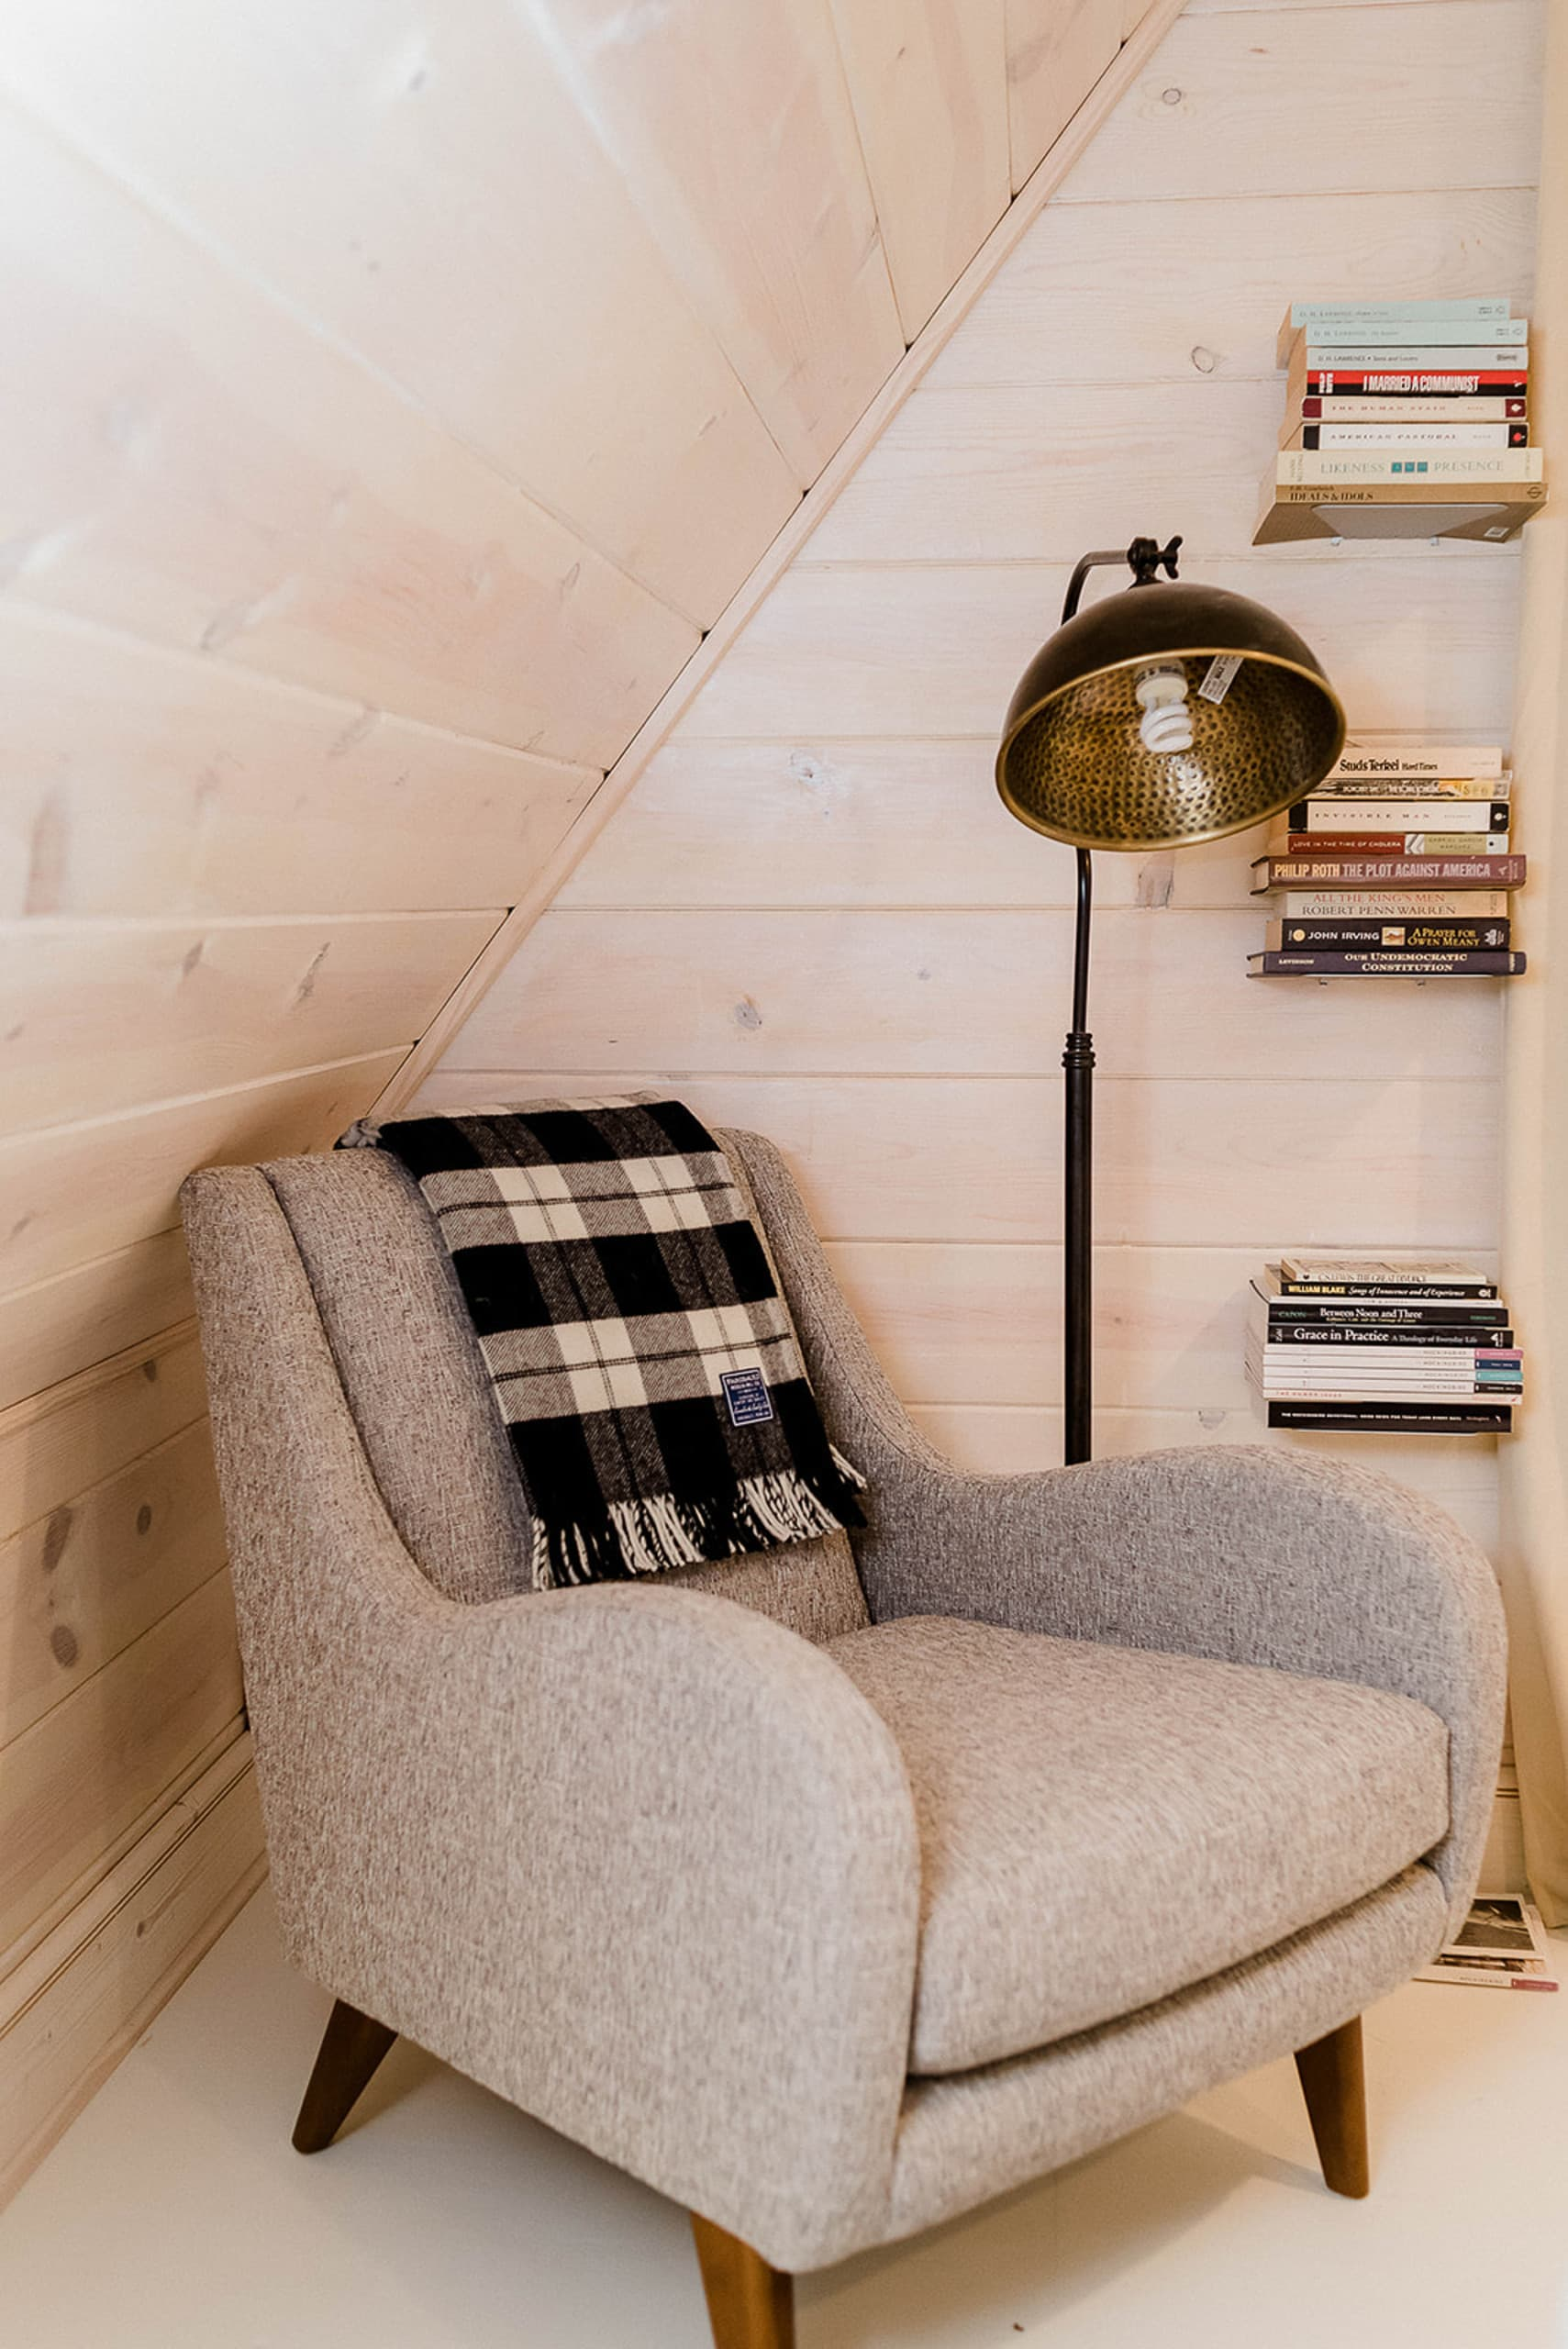 Cute chair in the corner of this bedroom